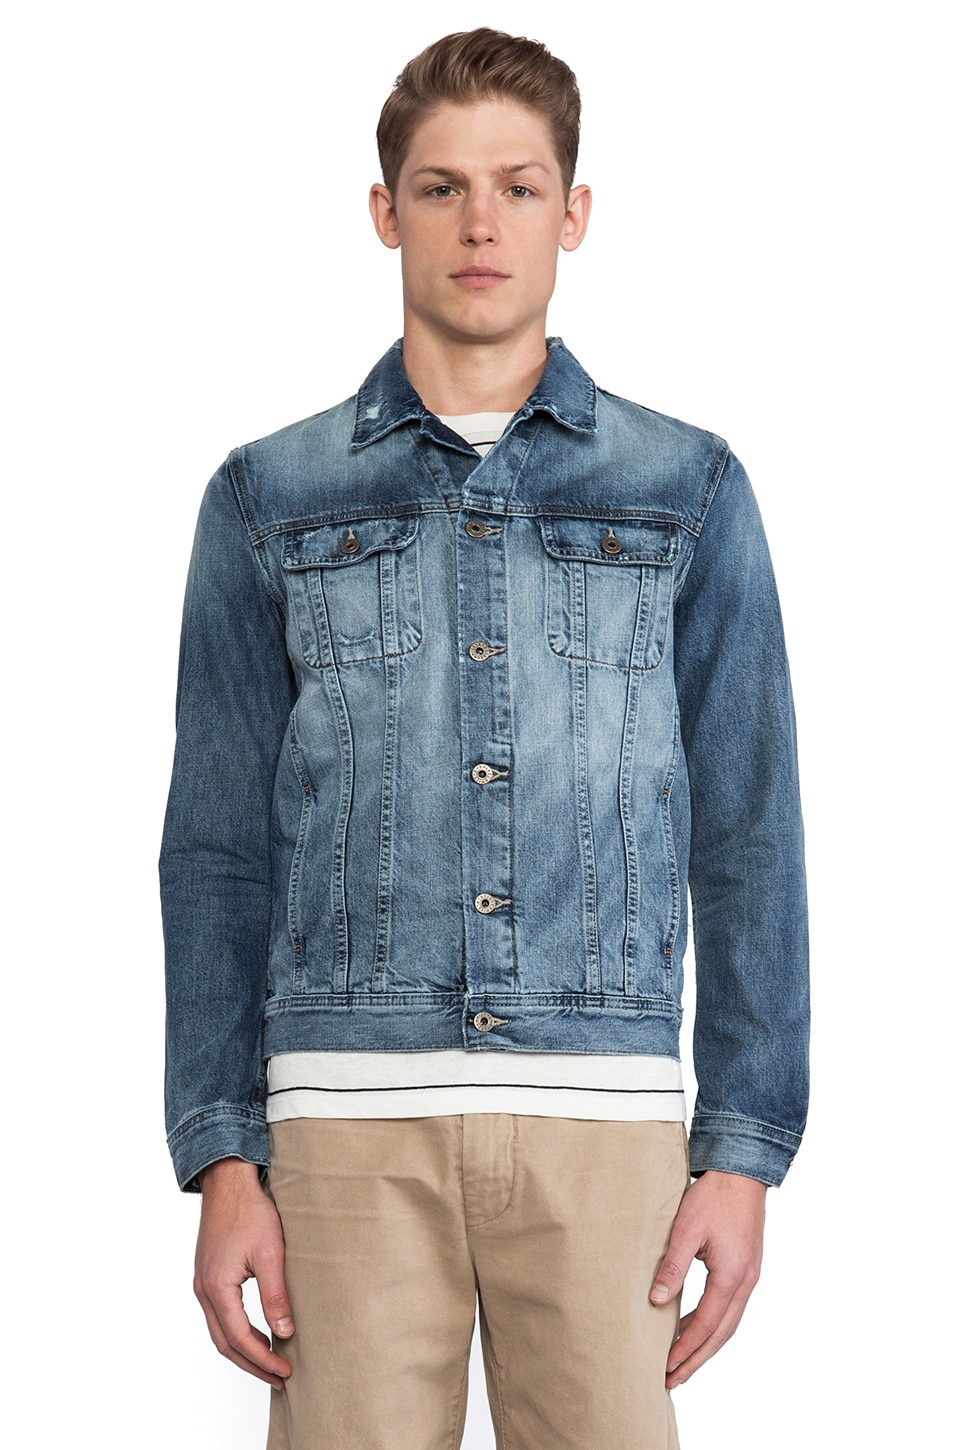 AG Adriano Goldschmied Dart Denim Jacket in Cyclone